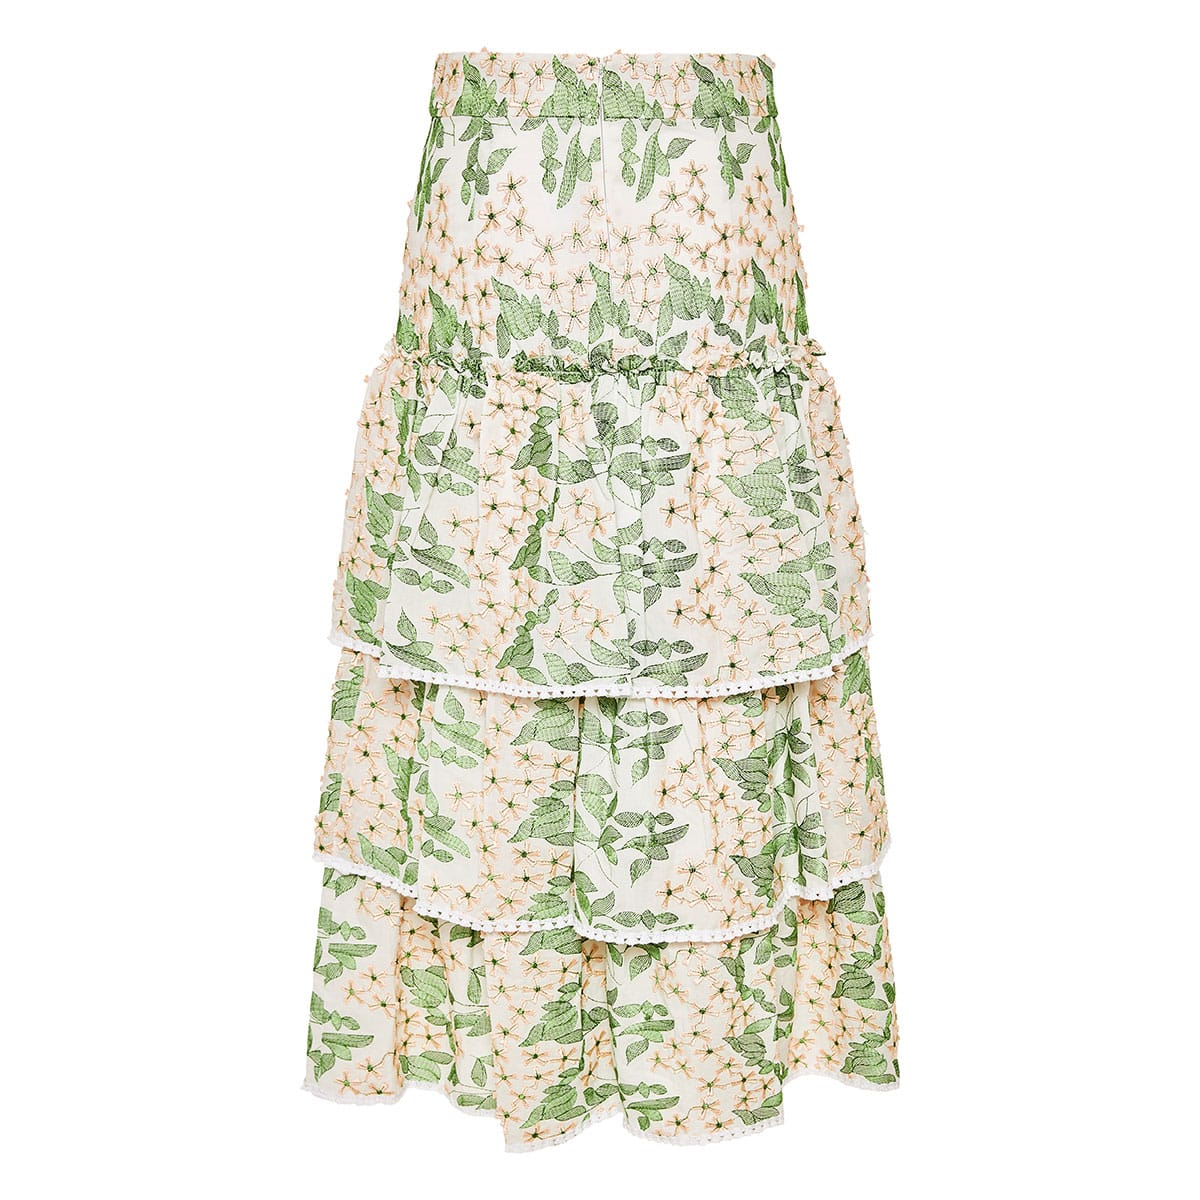 Aditya floral-embroidered tiered midi skirt